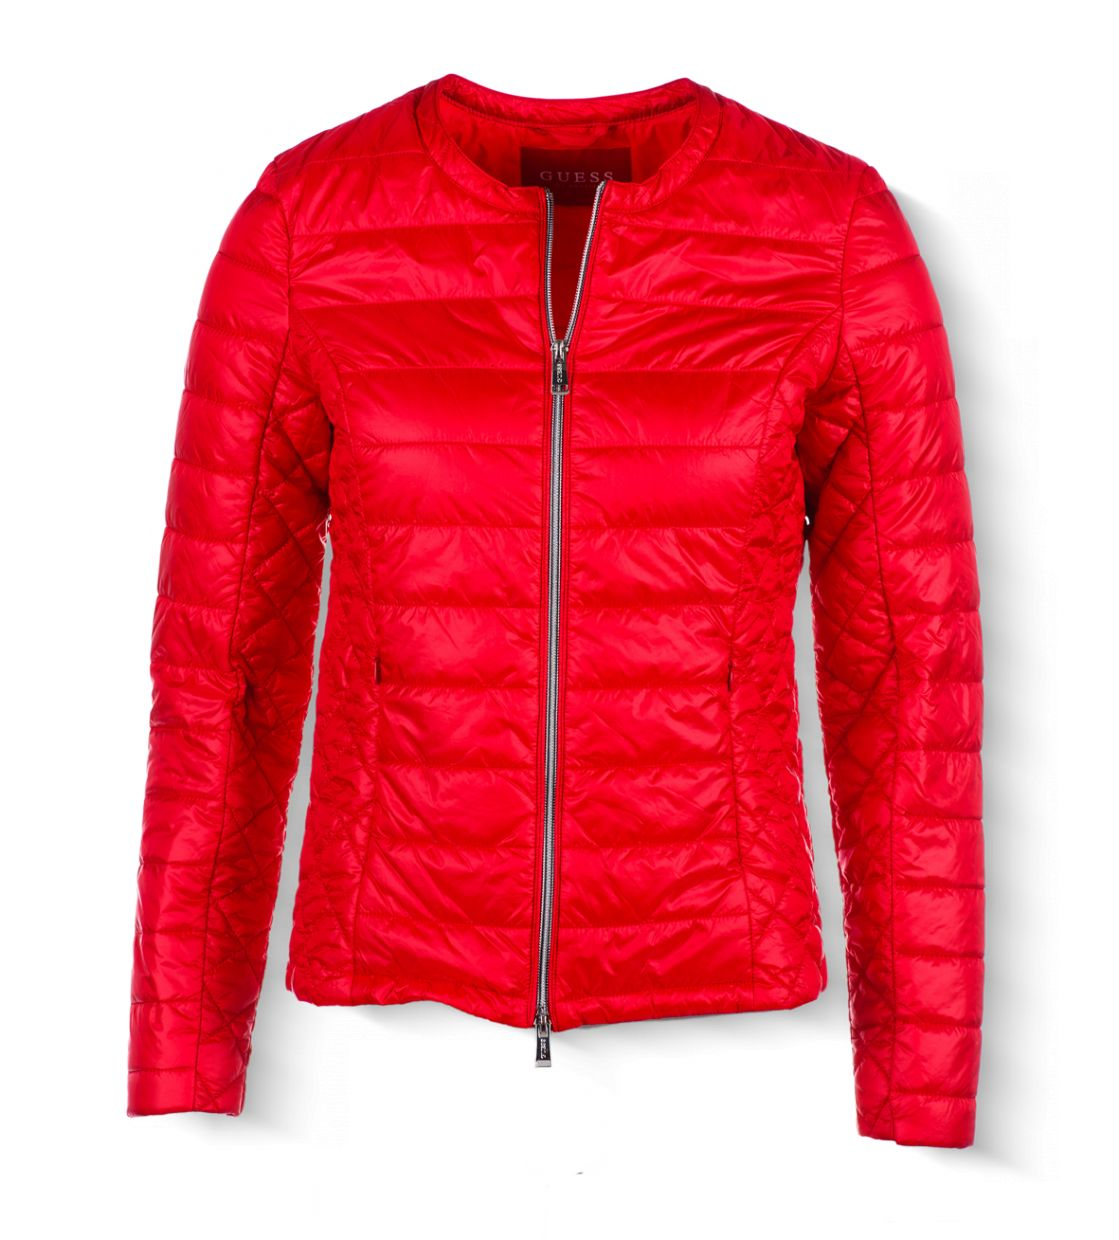 new product 41ffa 95c0a Guess Damen Jacke | Freeport Fashion Outlet